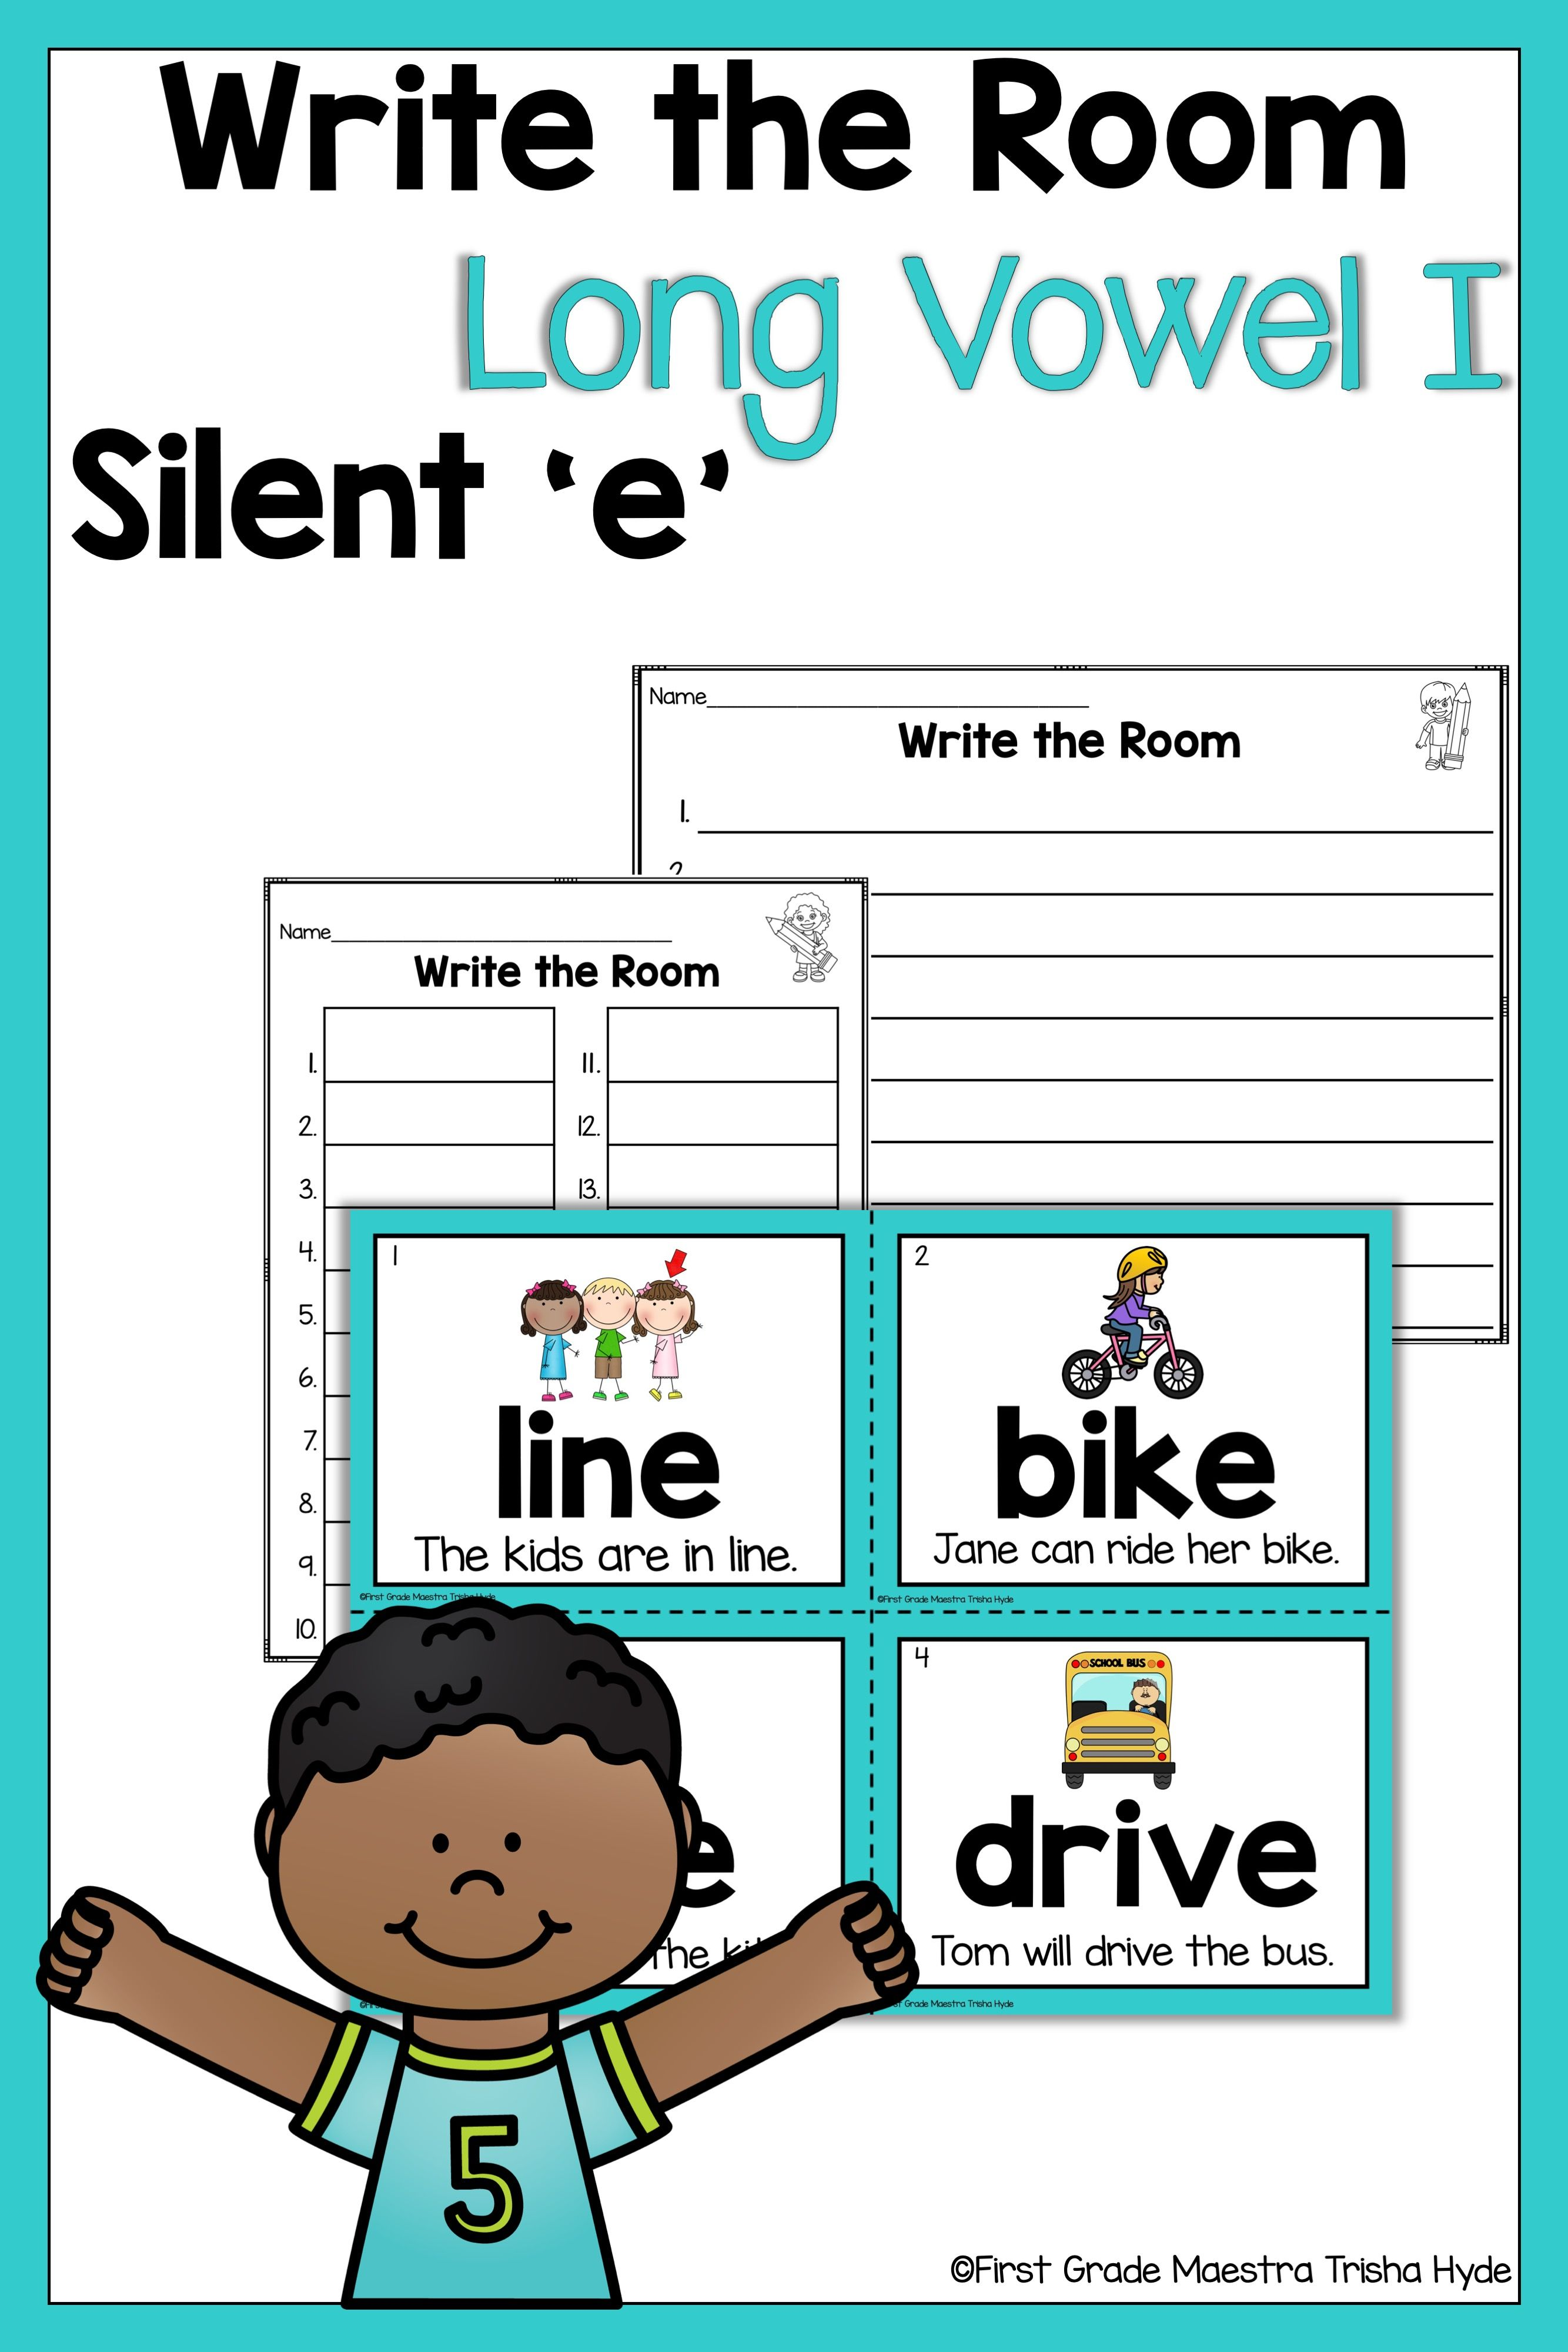 Long Vowel With Silent E Worksheets   Printable Worksheets and Activities  for Teachers [ 4000 x 2667 Pixel ]